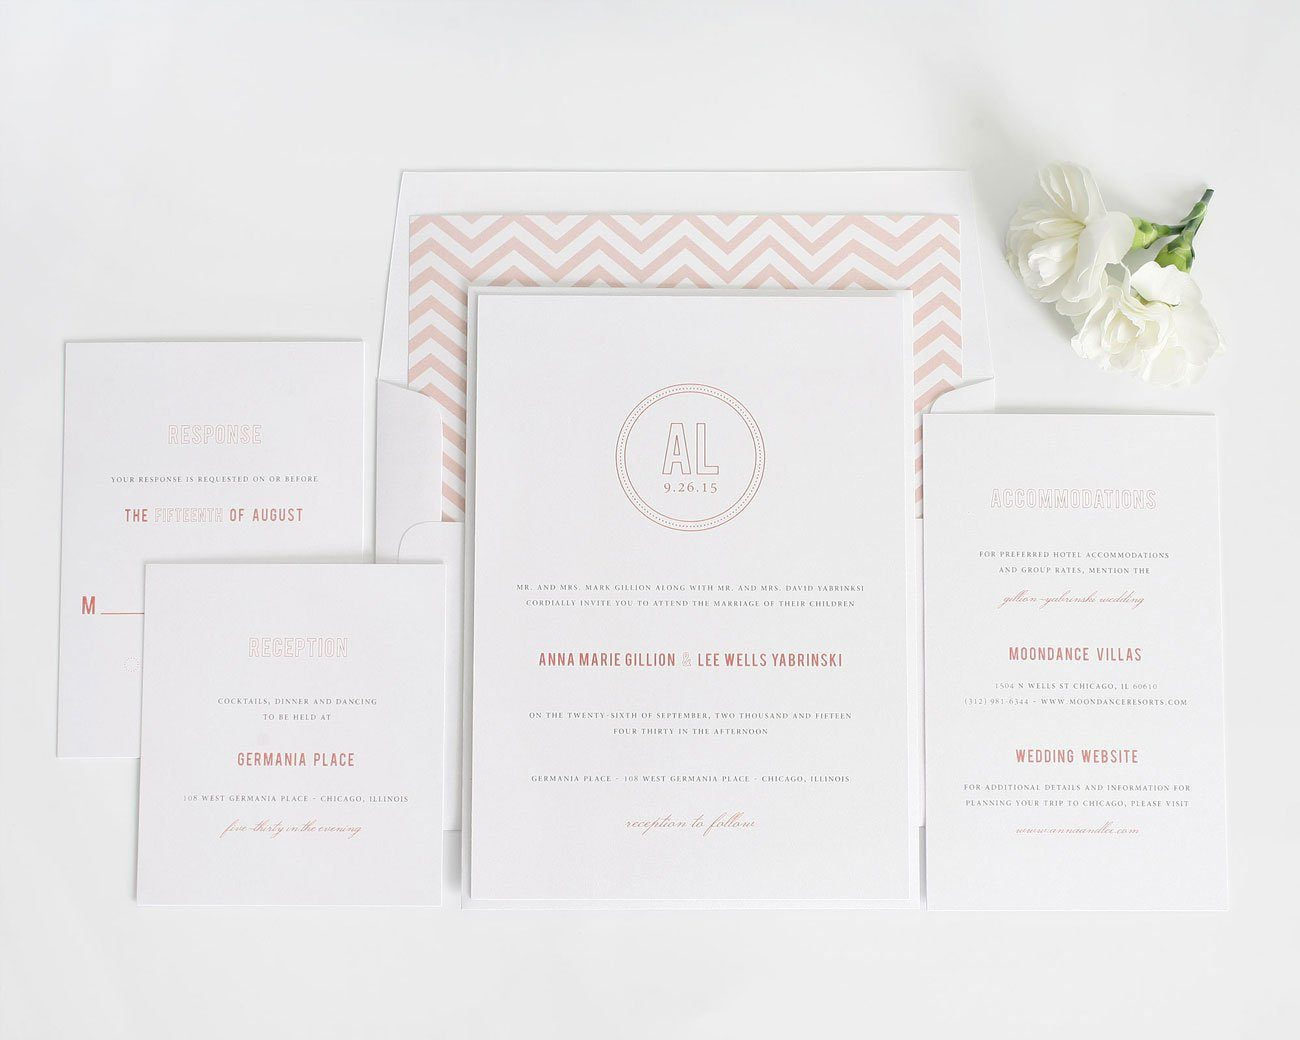 Monogram wedding invitations suite